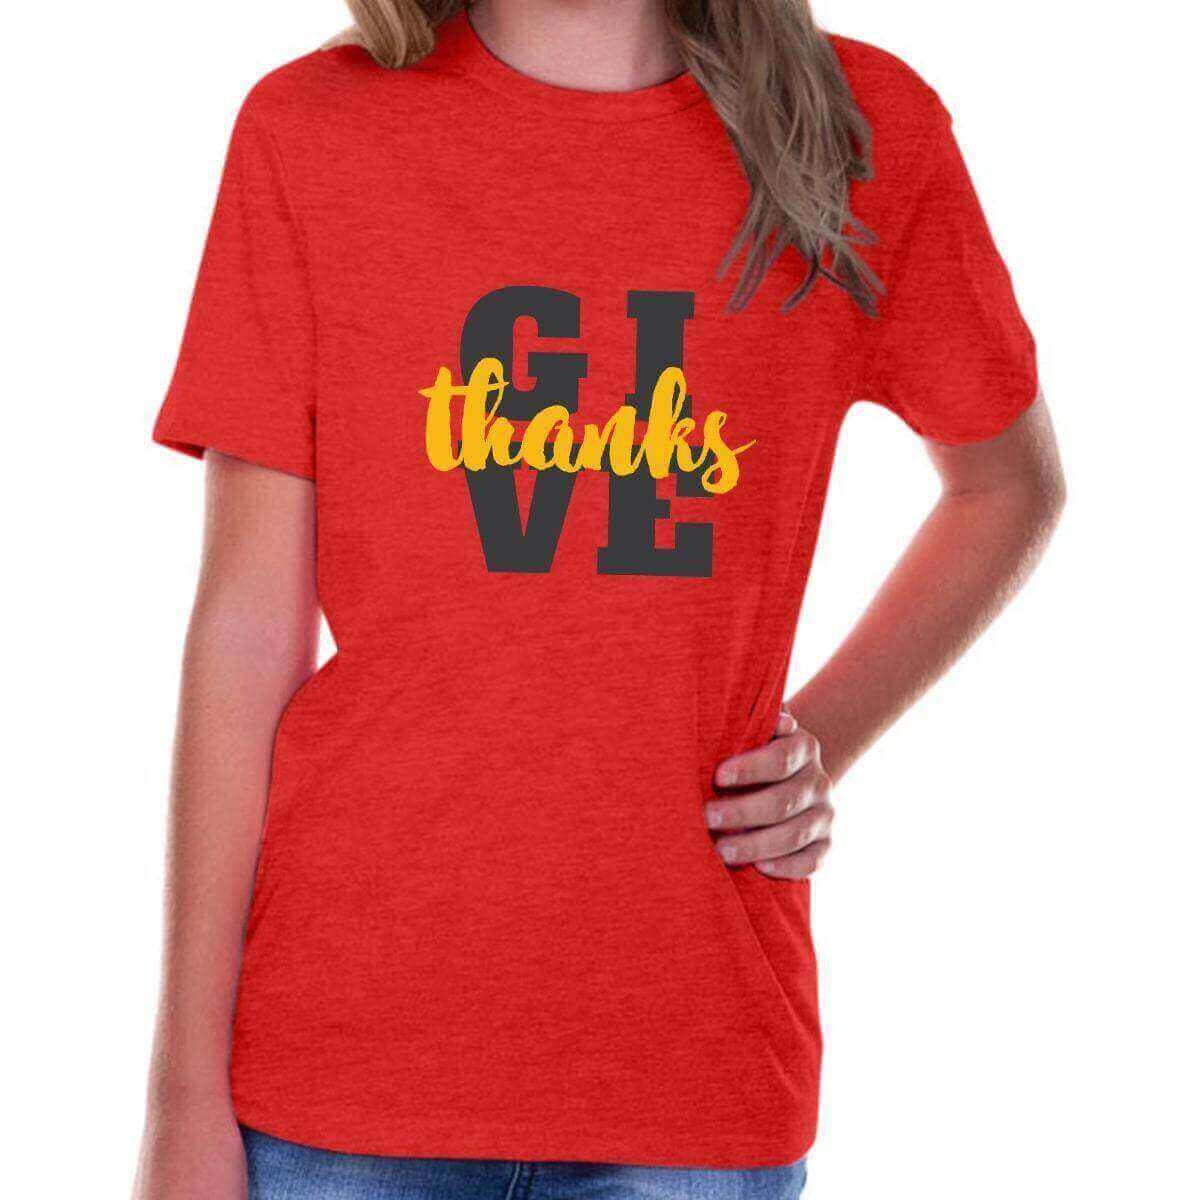 Give Thanks Youth Jersey Short Sleeve Christian T Shirt